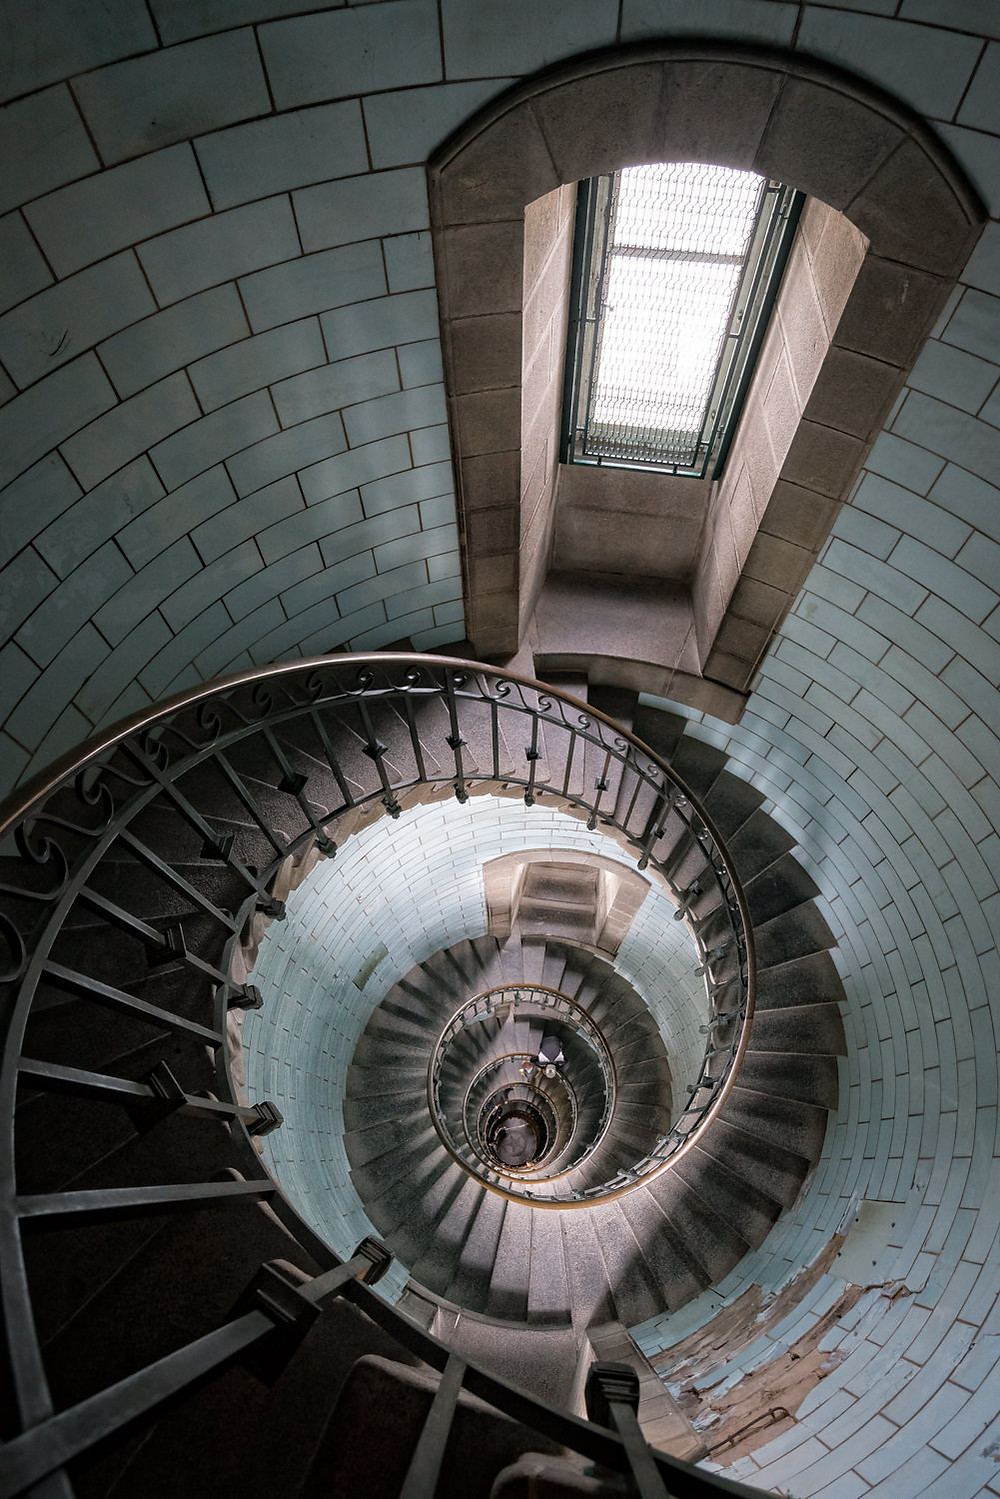 Spiral staircase interior of the Eckmuhl lighthouse